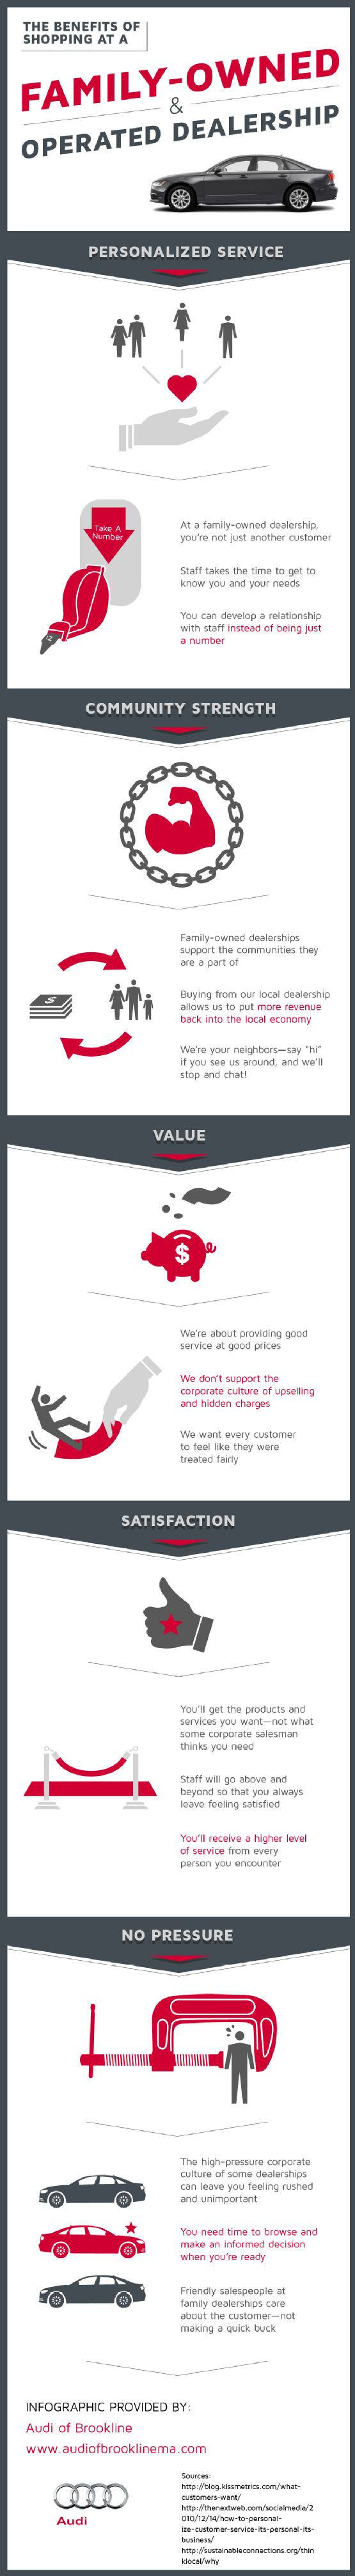 Family-owned Audi dealerships remove the high-pressure environment of bigger dealerships. Customers have the opportunity to really browse and take their time making up their mind. Check out this infographic from an Audi dealership in Brookline to learn about other benefits.